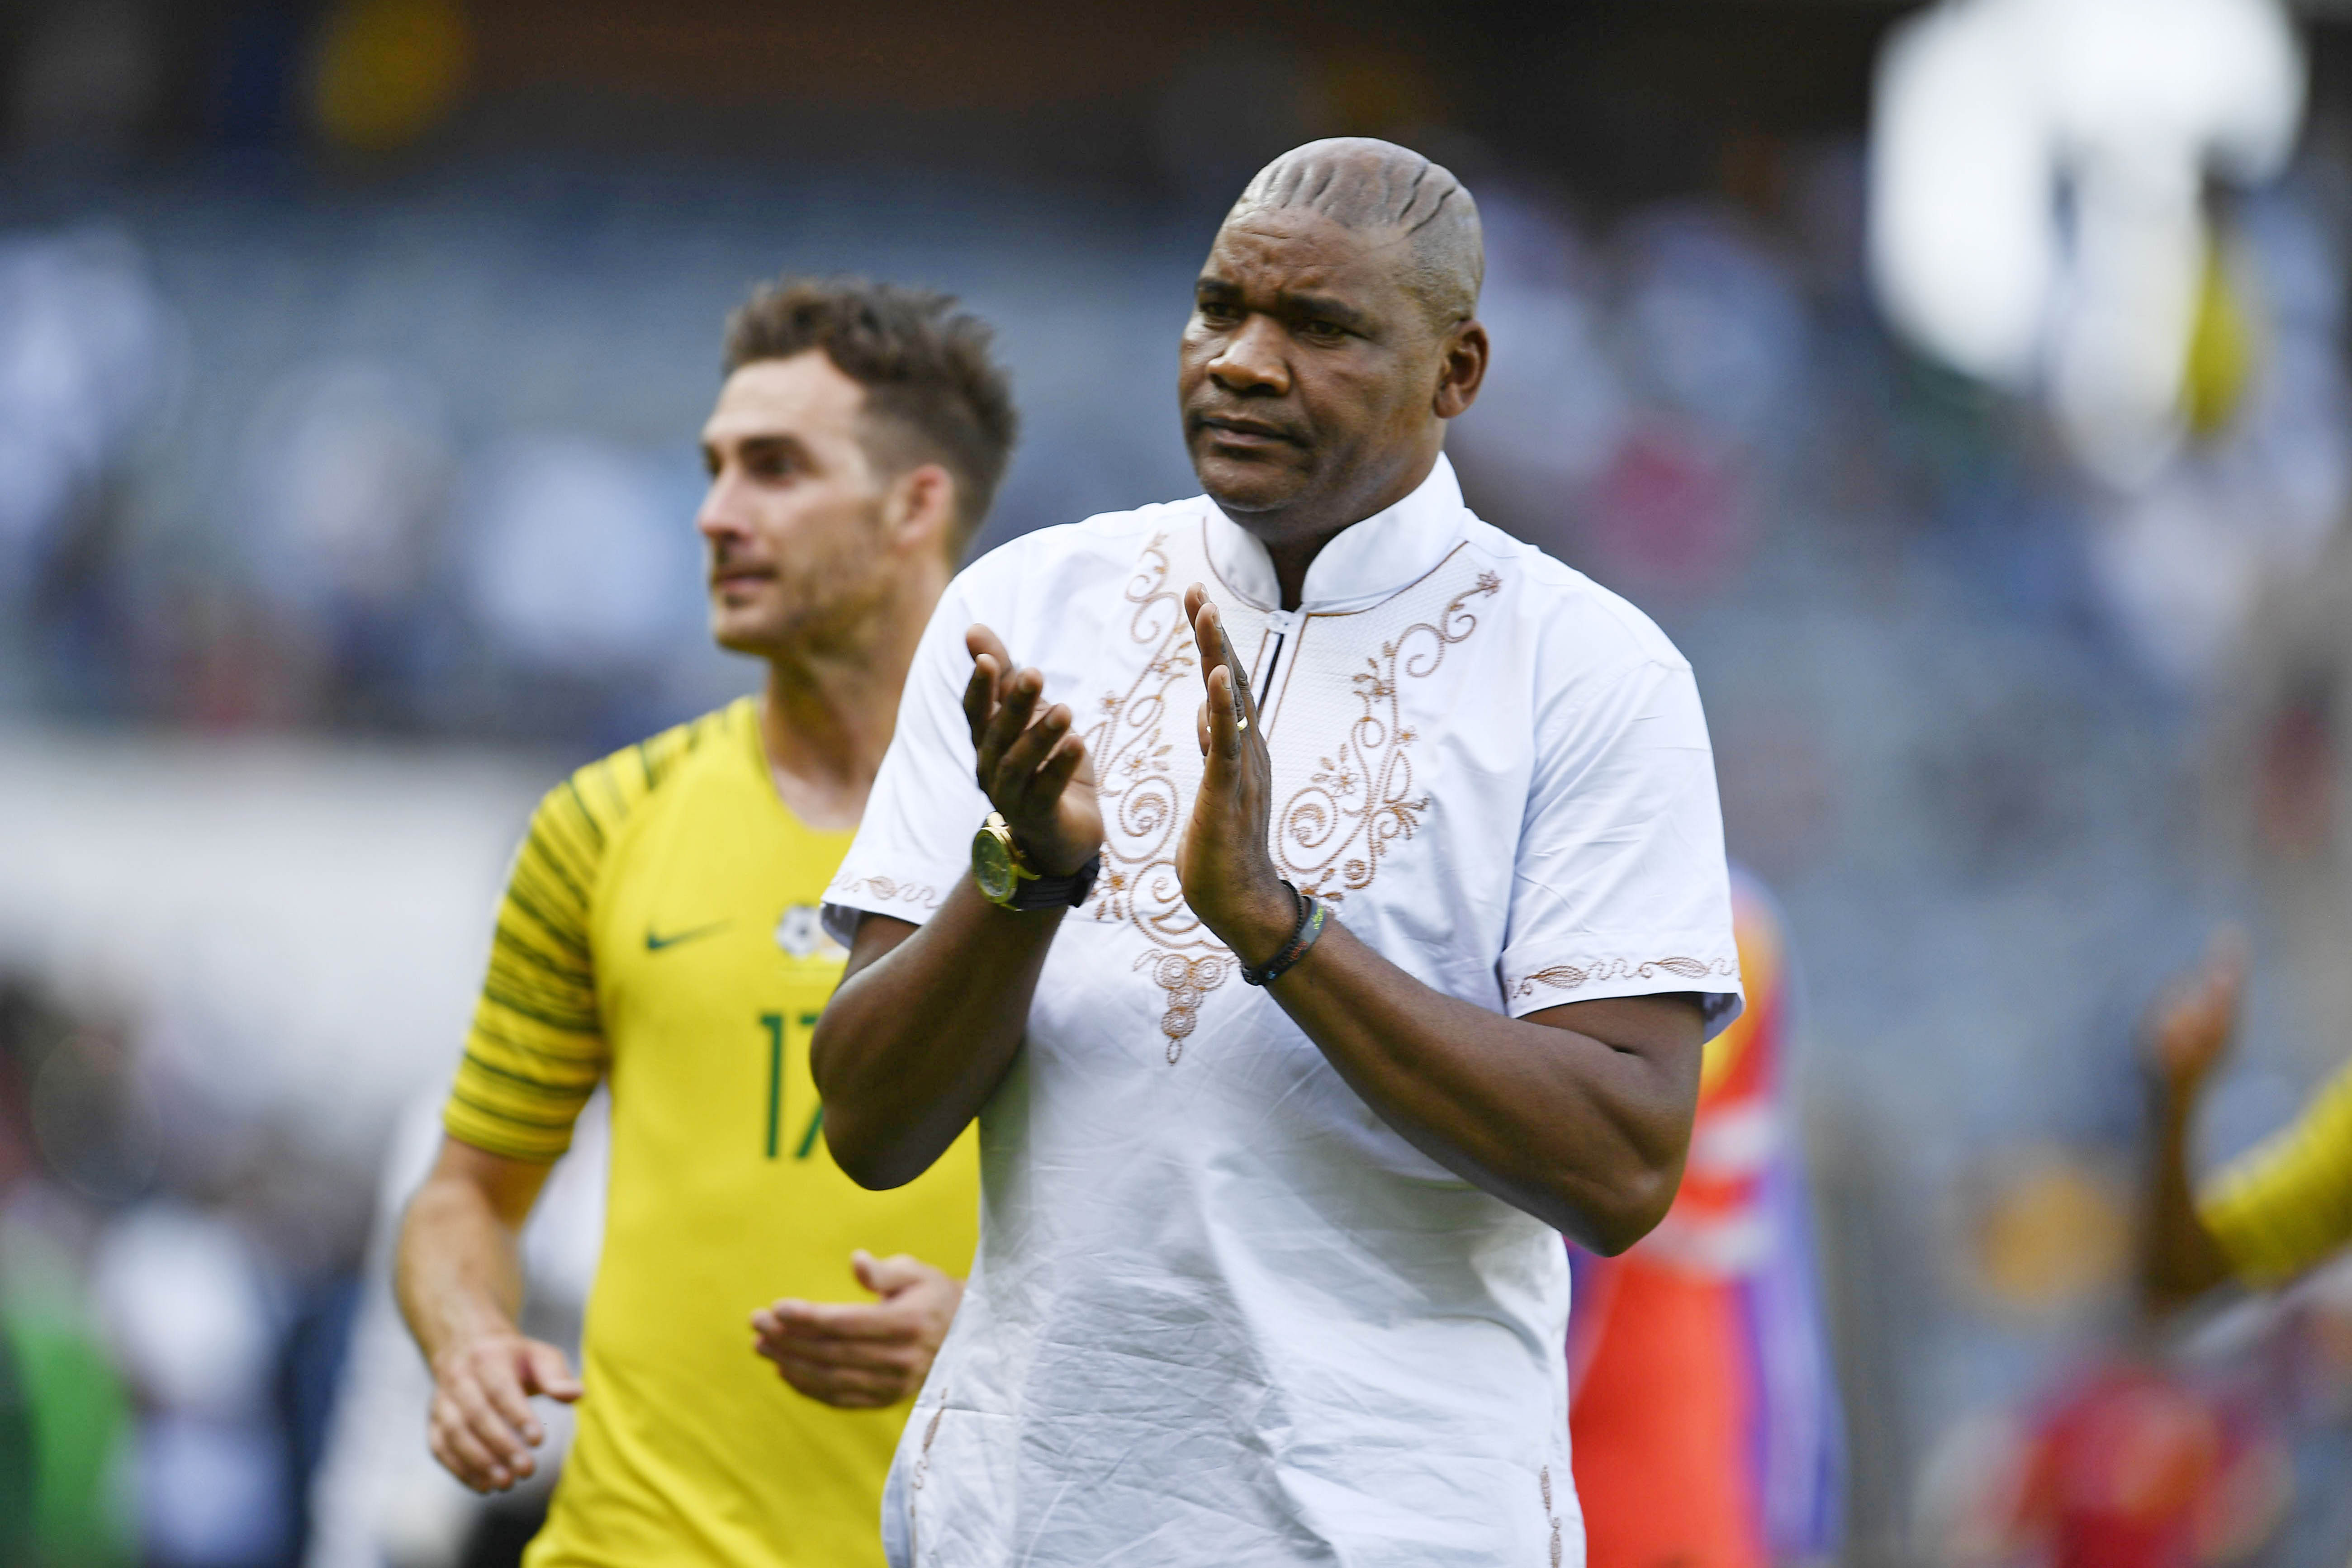 17 November 2019: Coach Molefi Ntseki went with a white shirt for Bafana Bafana's 2021 Afcon qualifier against Sudan at Orlando Stadium in Soweto, Johannesburg. (Photograph by Lefty Shivambu/Gallo Images)